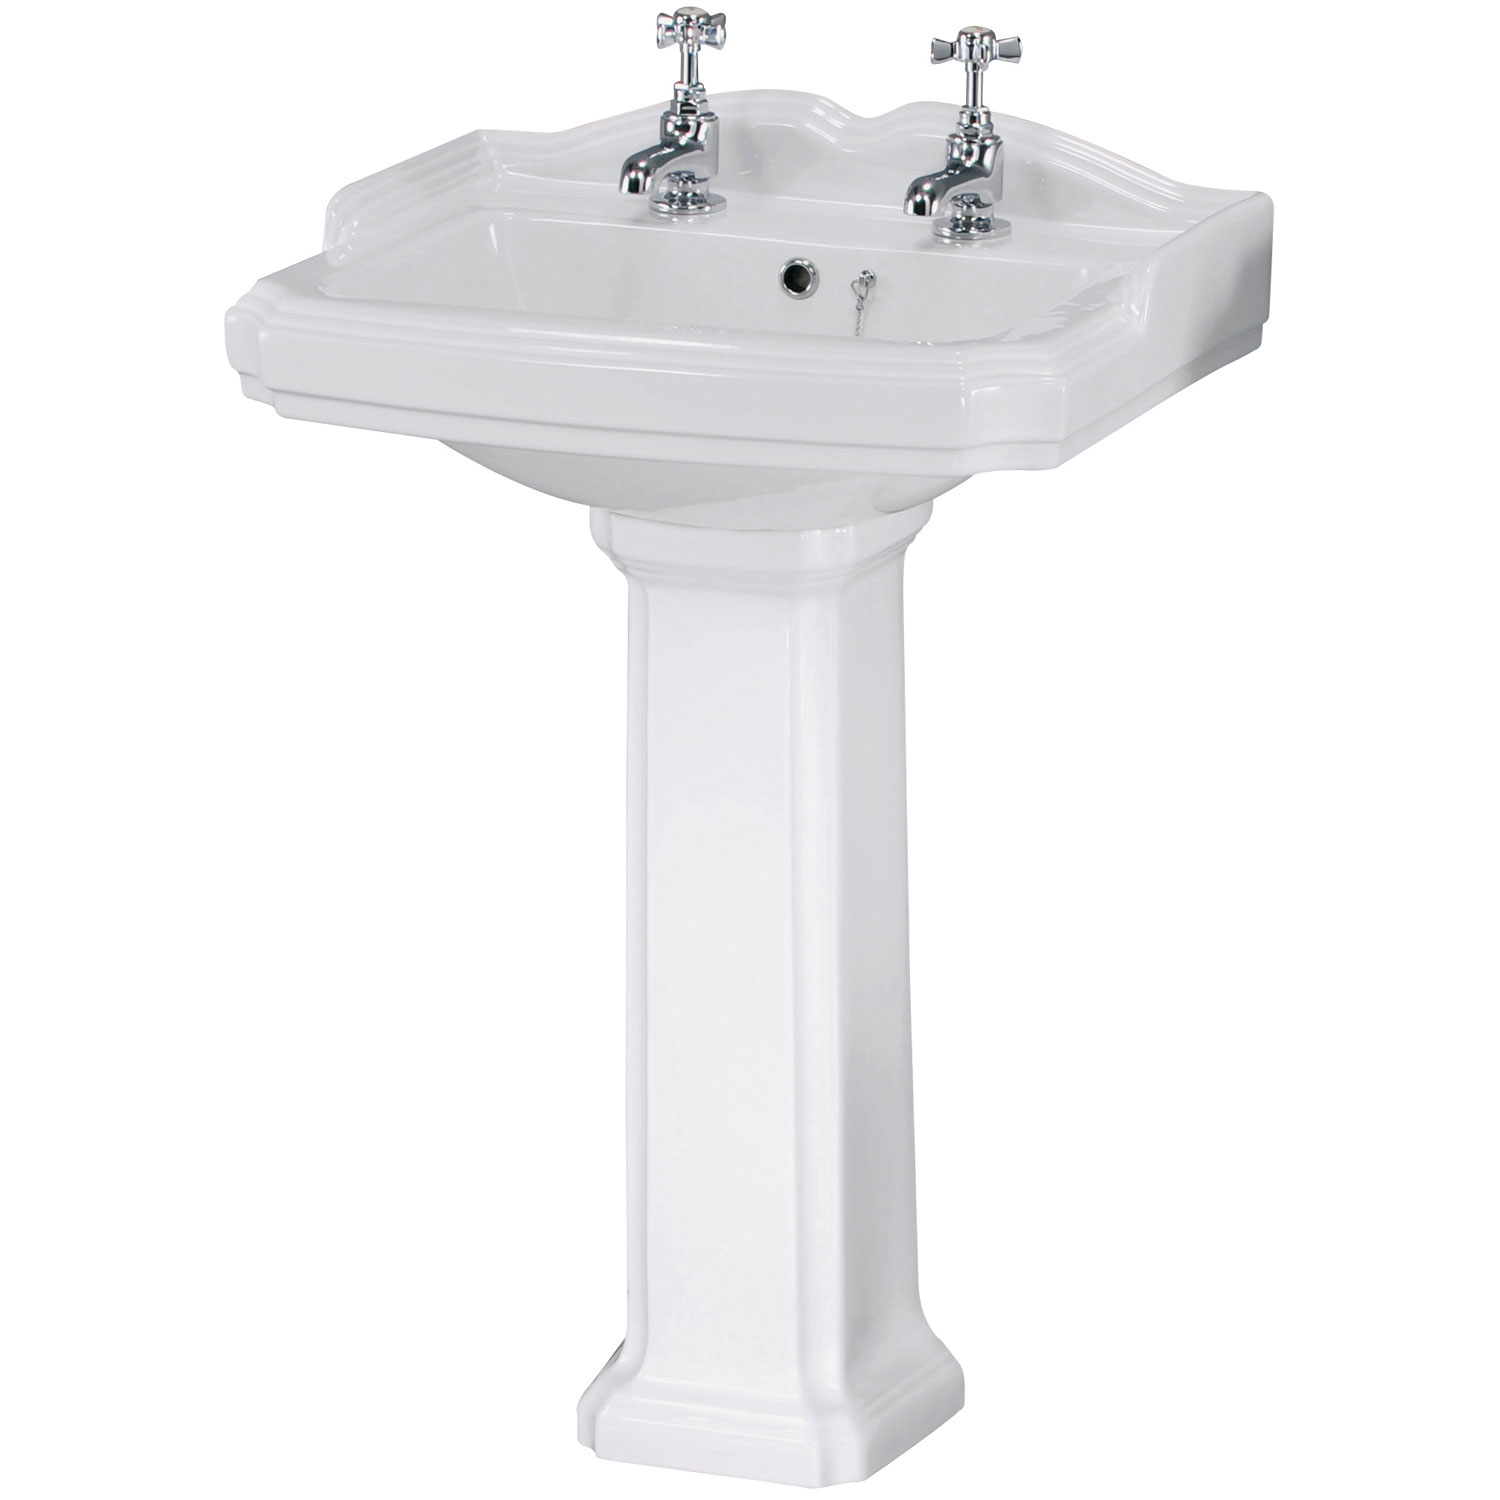 Premier Legend Basin and Full Pedestal 580mm Wide - 2 Tap Hole